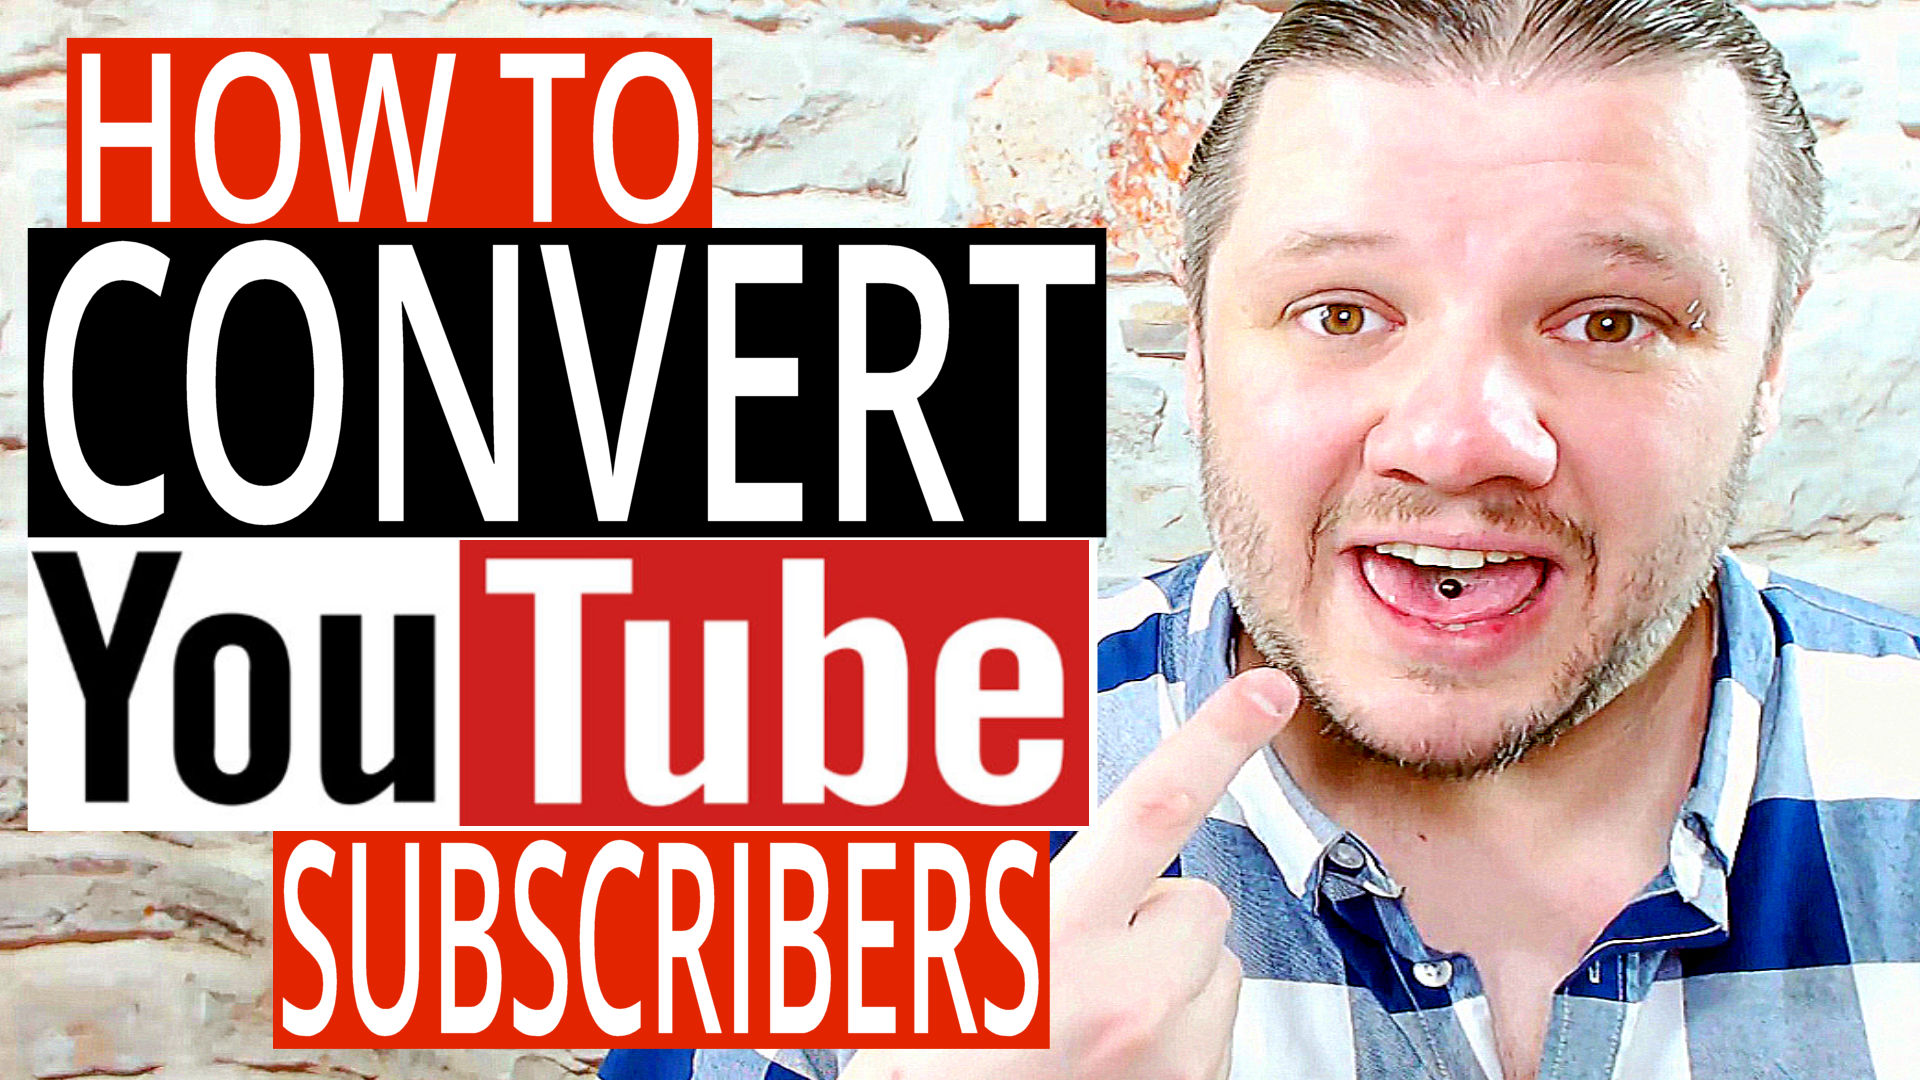 How To Get YouTube Subscribers,how to get youtube subscribers hack,how to get youtube subscribers fast,Get YouTube Subscribers,get more subscribers,how to get subscribers,youtube how to get subscribers,get subscribers on youtube,get youtube subscribers for free,getting subscribers on youtube,youtube subscribers,How To Get More YouTube Subscribers,get subscribers,how to get subscribers on youtube,get more subscribers on youtube,youtube,subscribers,alanspicer,hacks